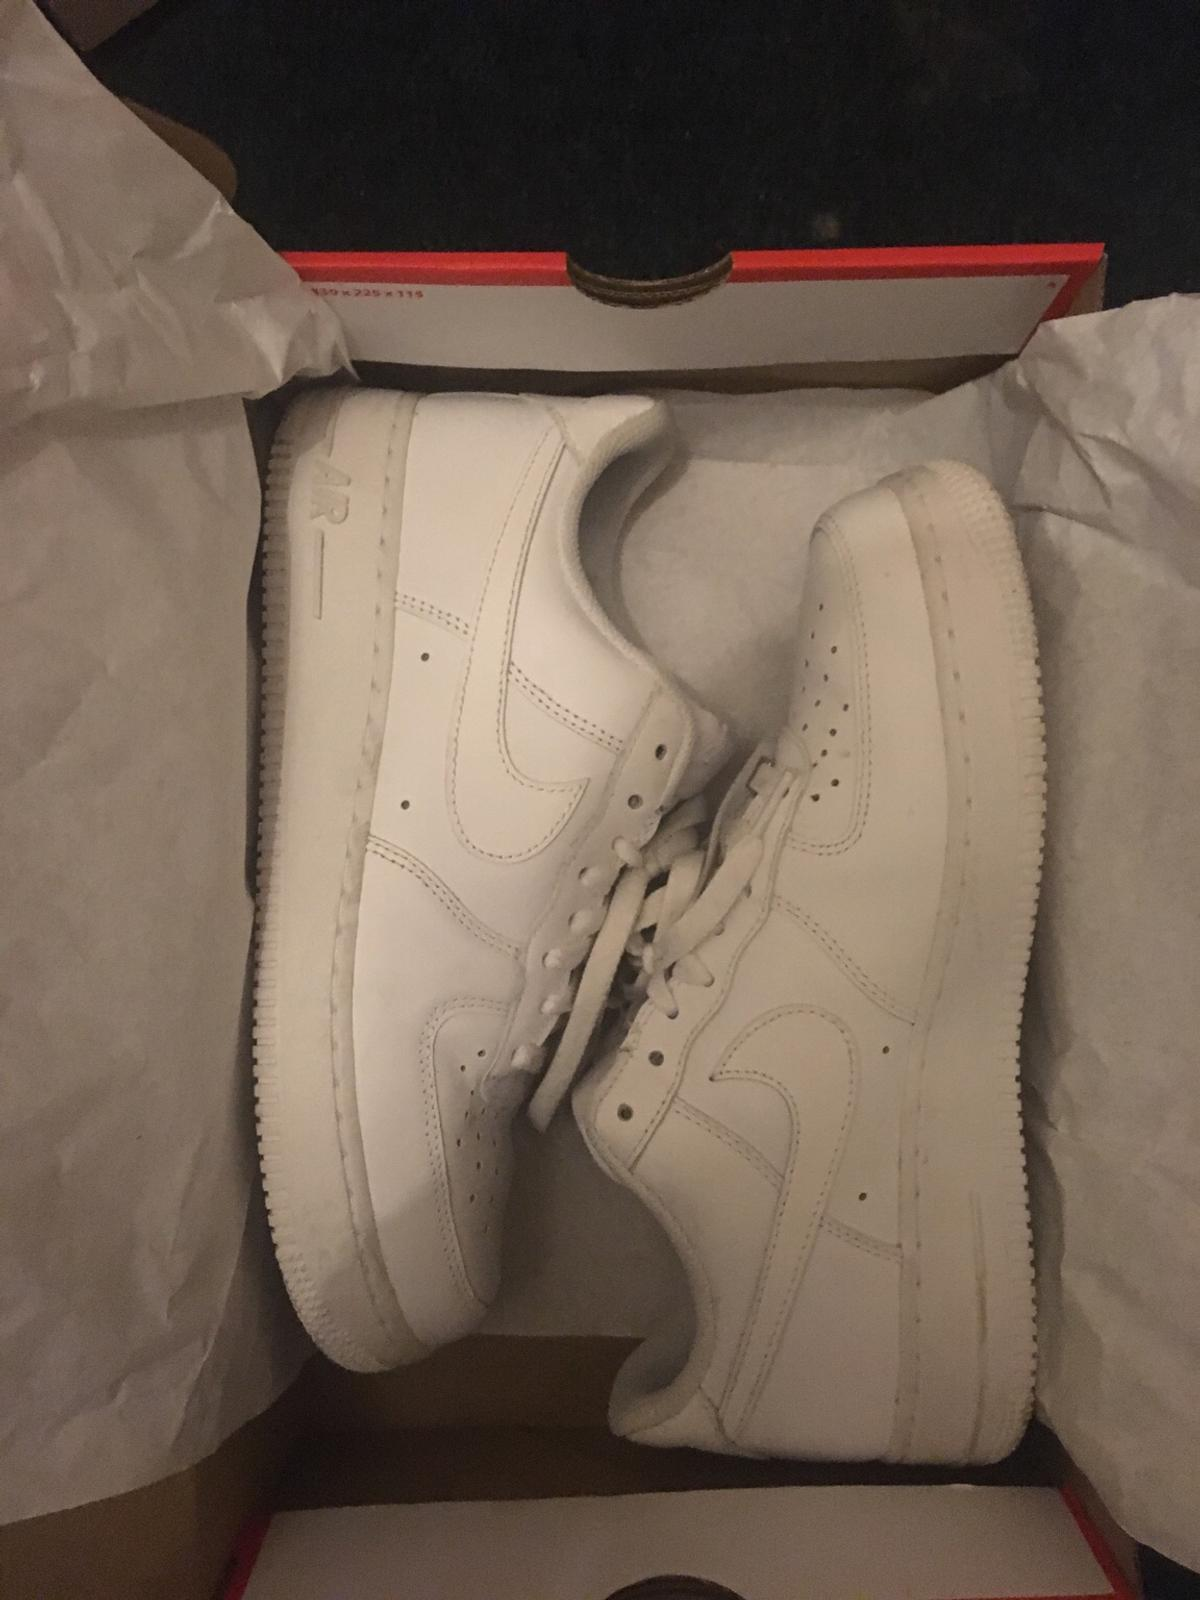 They are in really good condition no marks or scratches